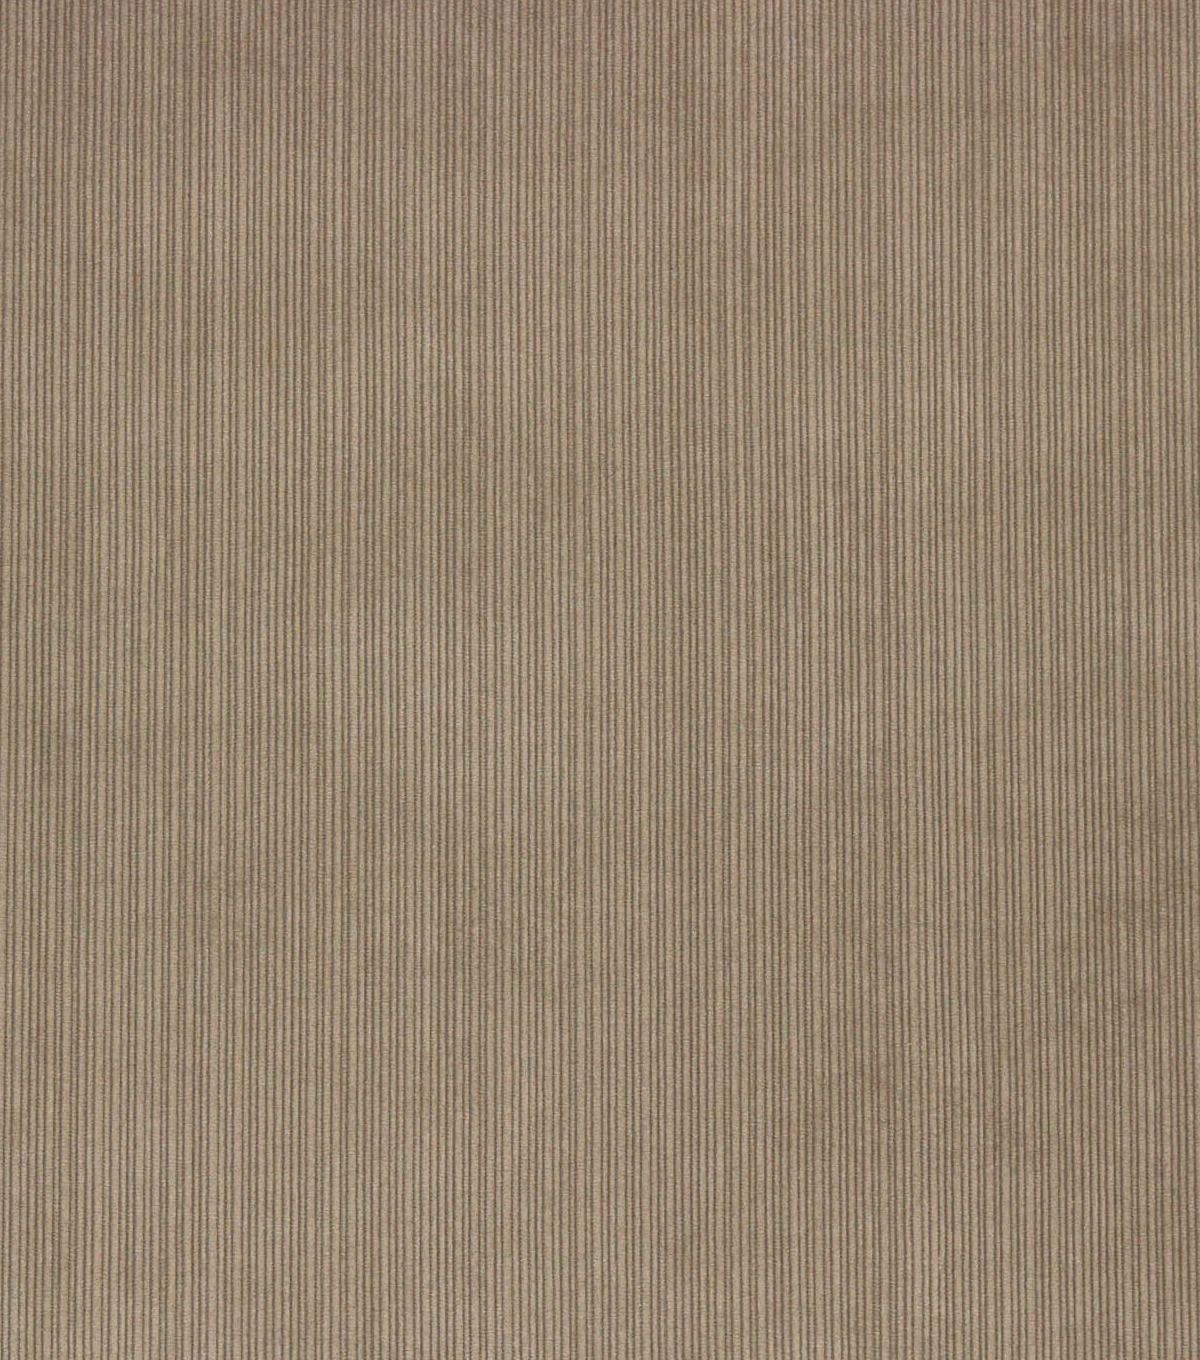 Hudson 43 Uphlstery Fabric-Otto Jute